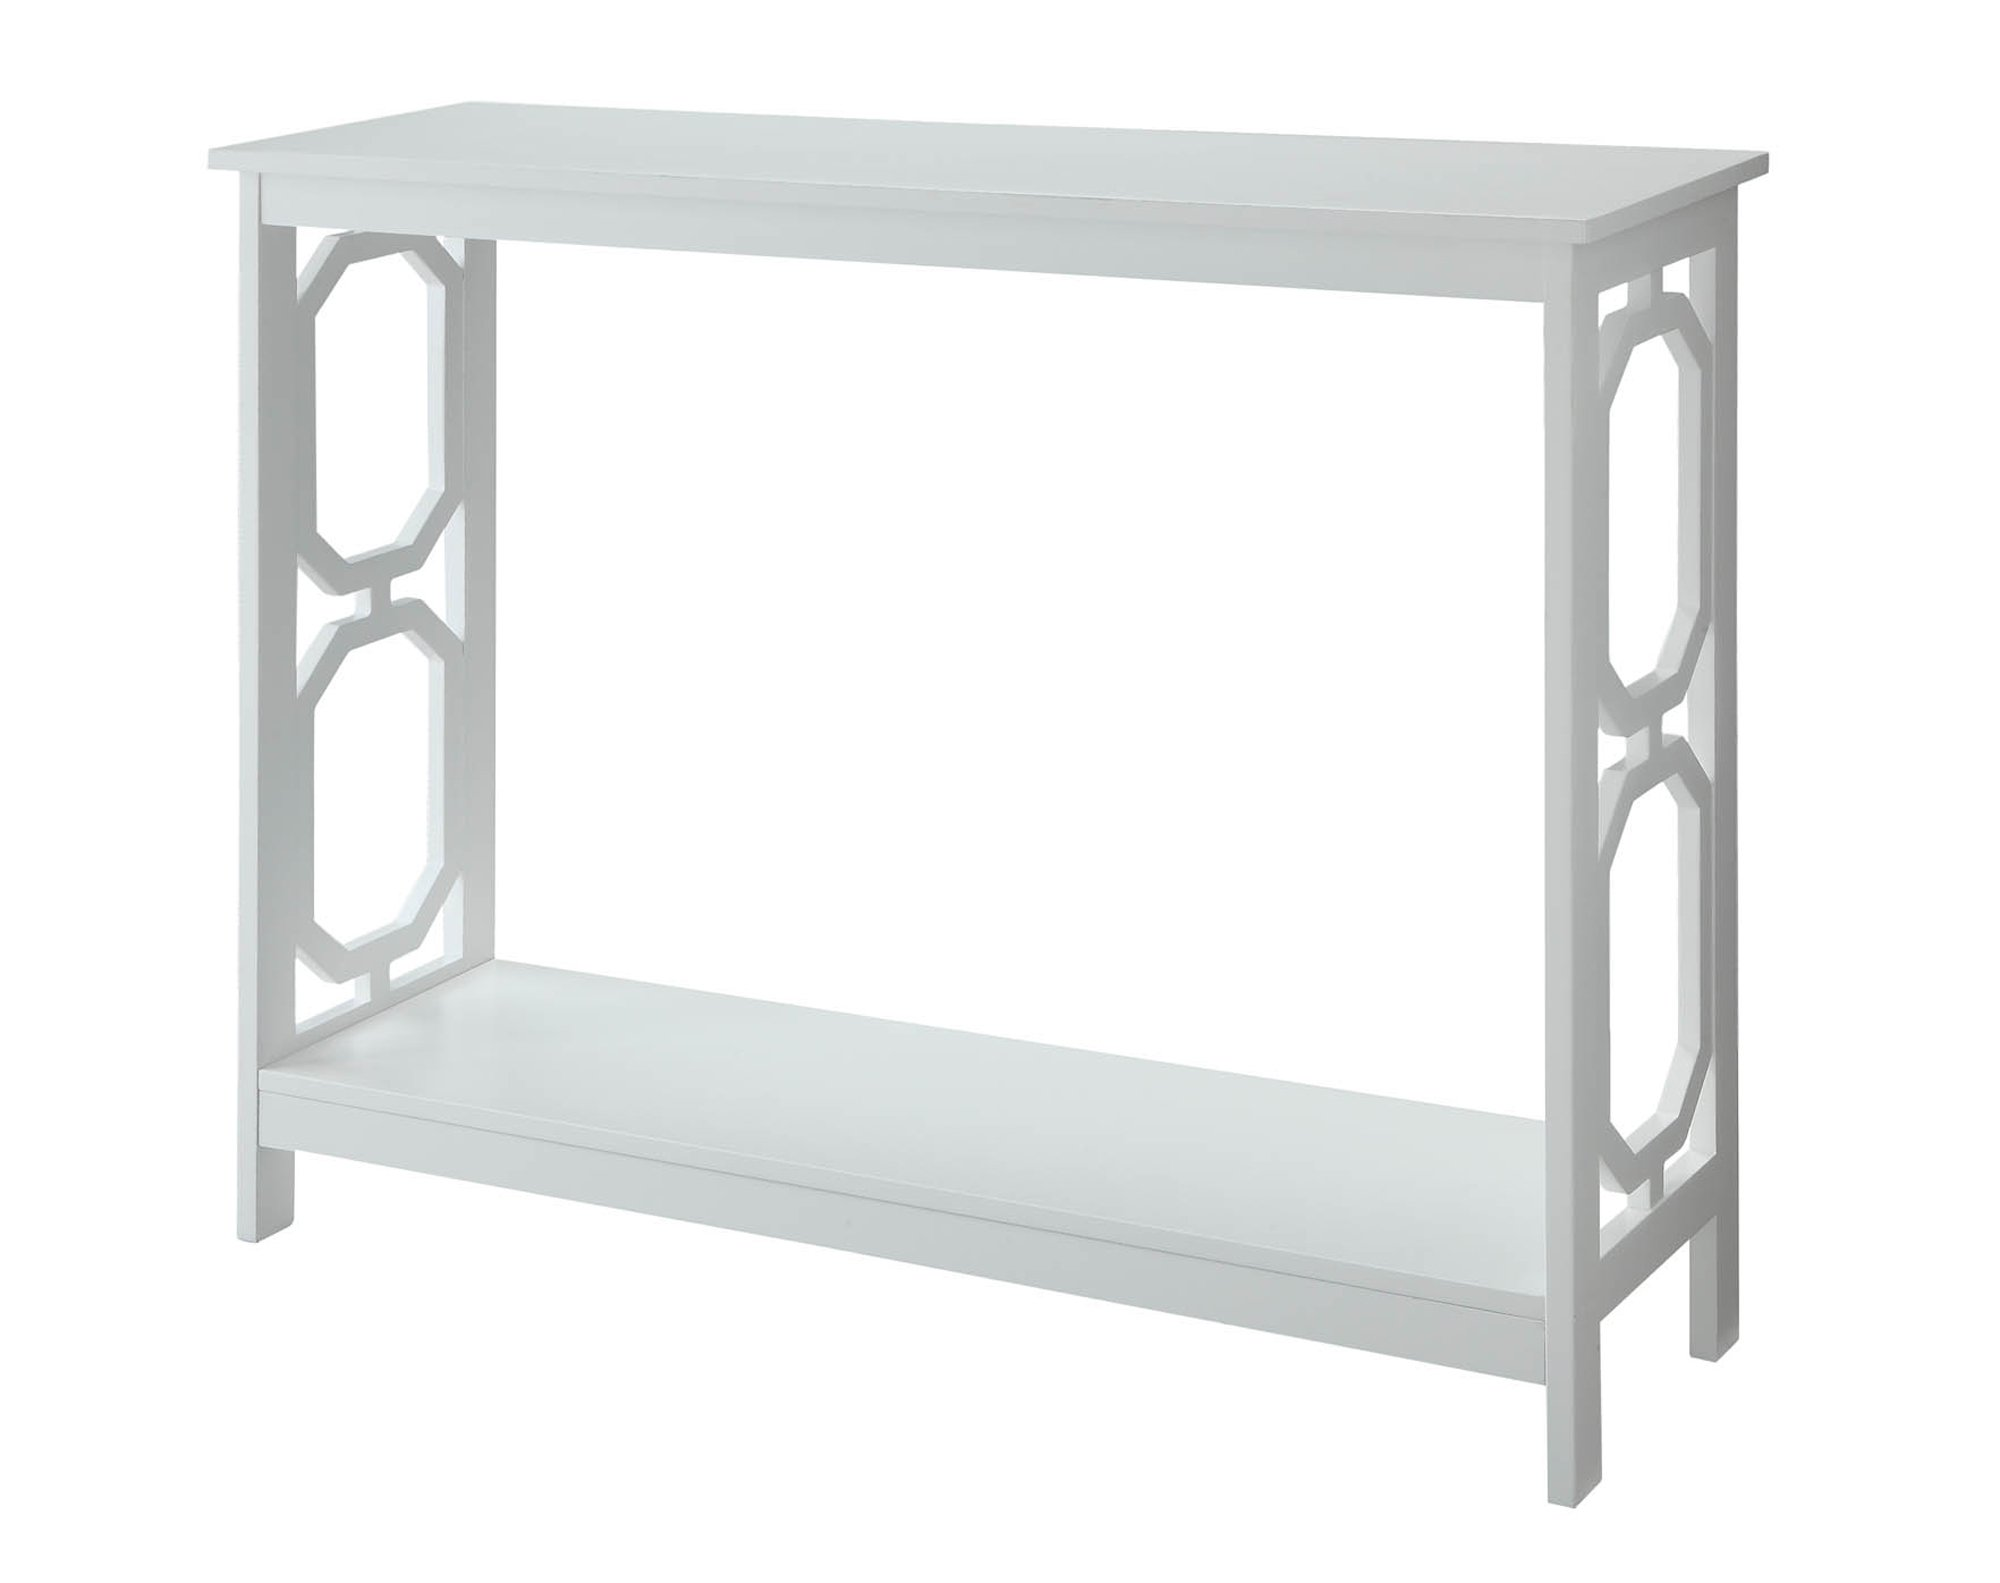 Convenience Concepts Omega Console Table, White by Convenience Concepts (Image #1)